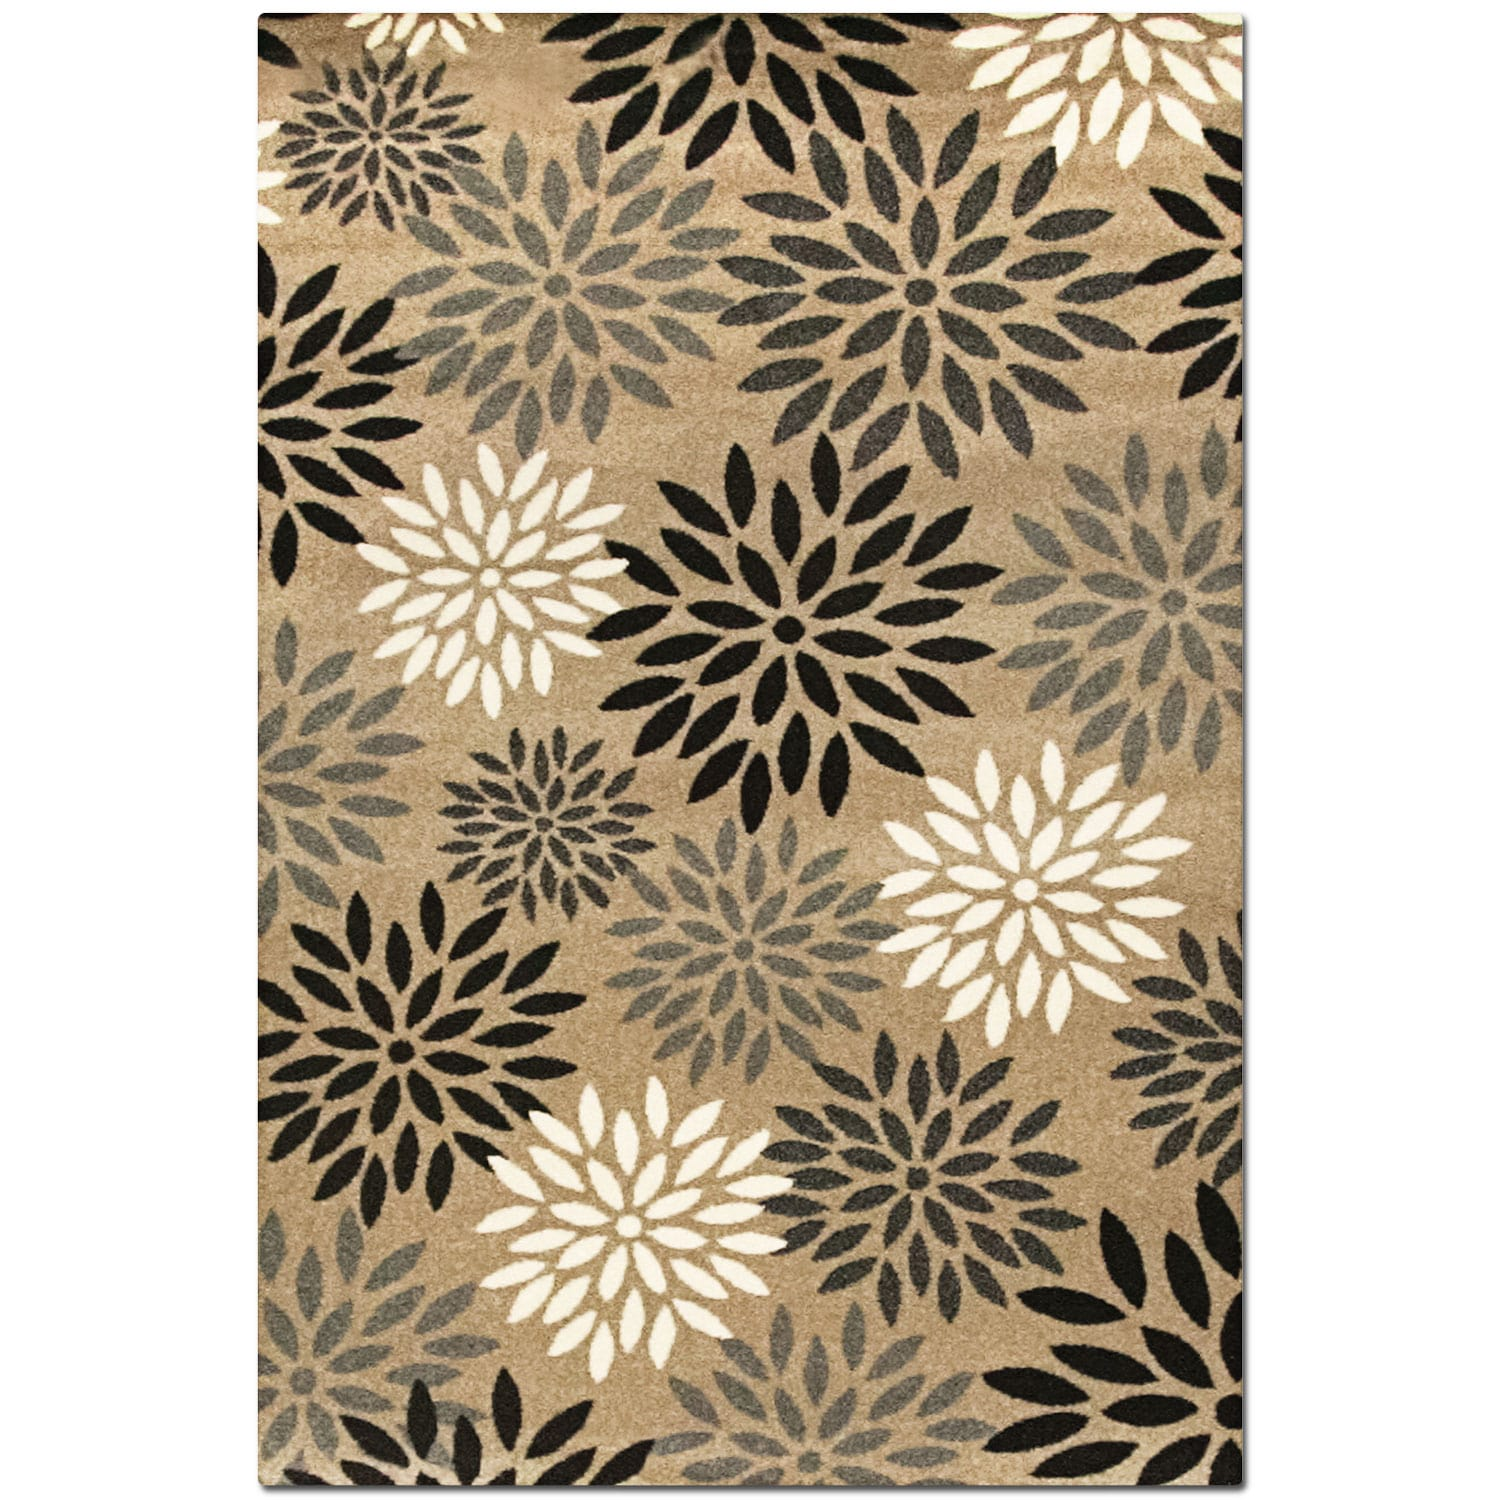 Rugs - Casa 5' x 8' Area Rug - Tan and Black